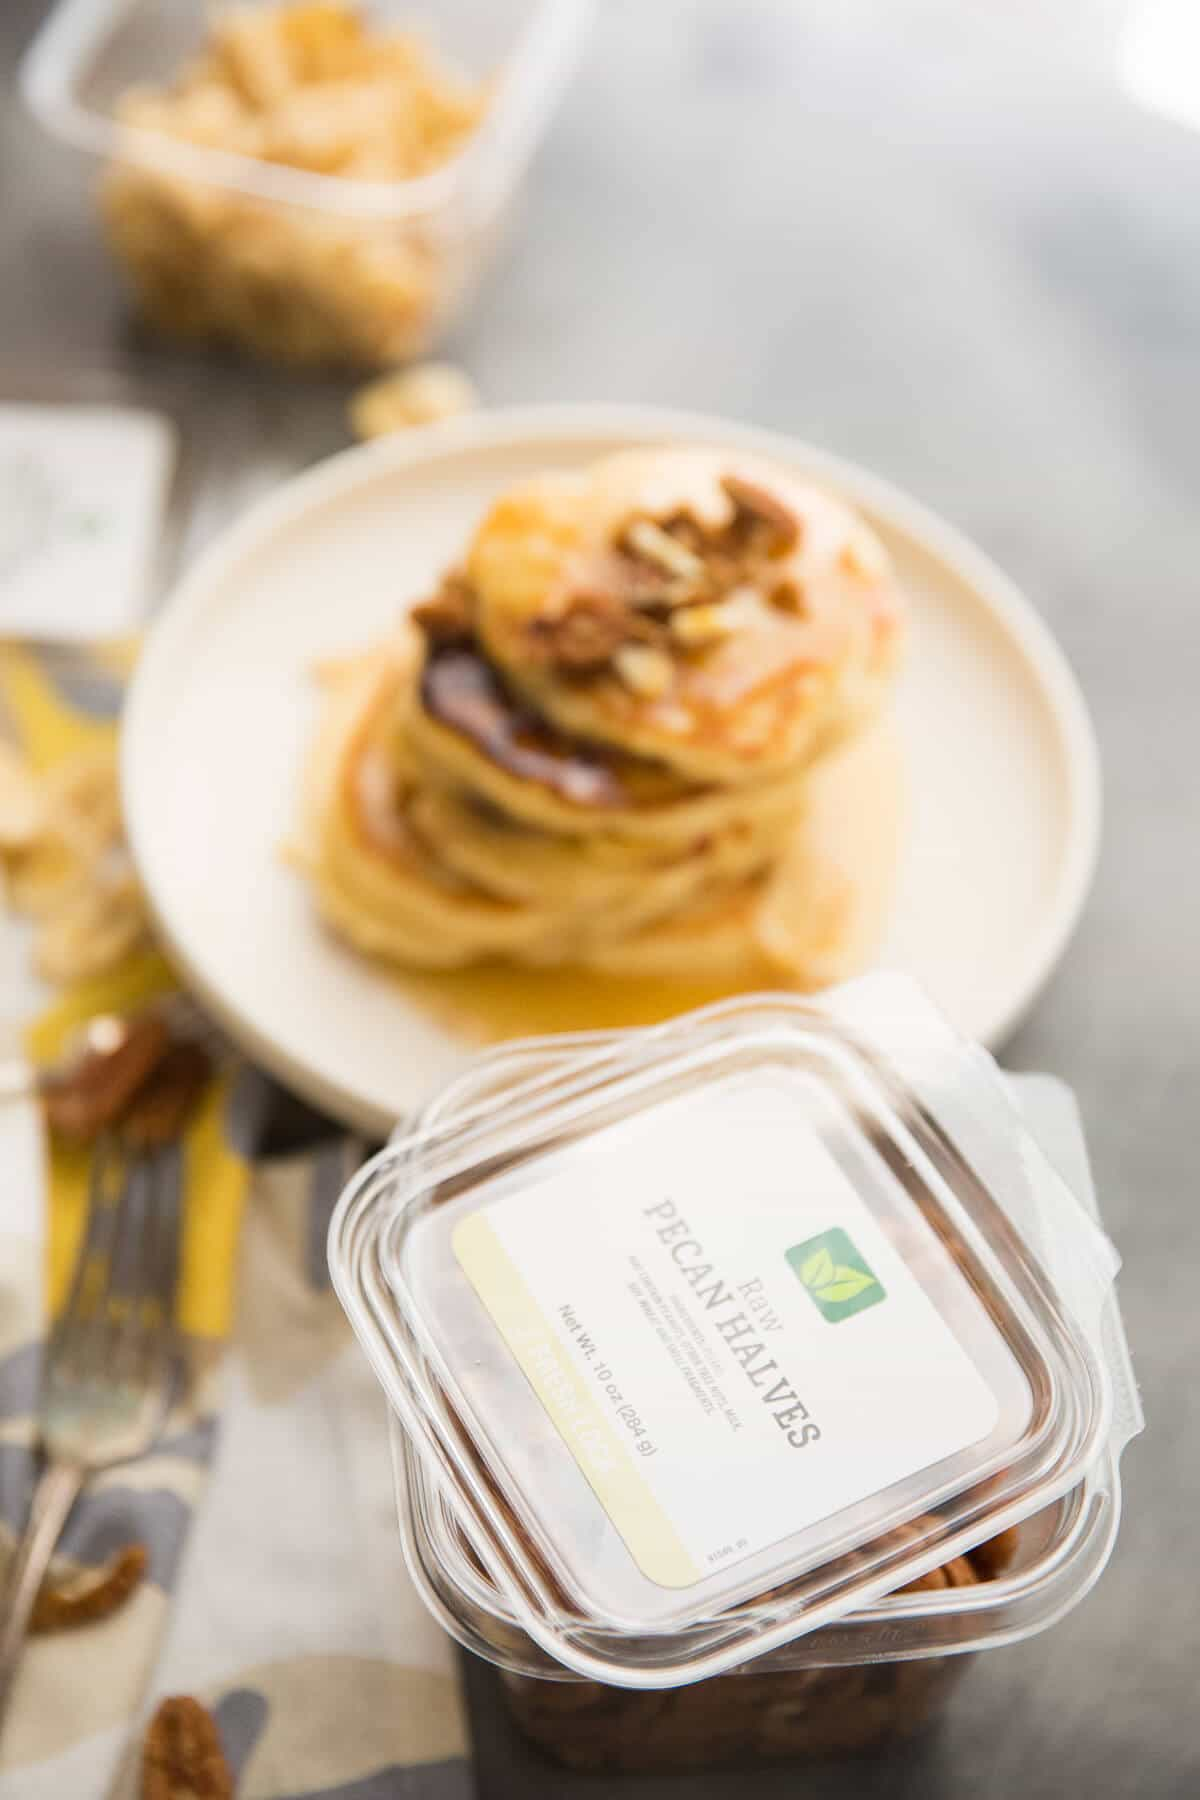 Banana's Foster makes an appearance at your breakfast table instead of the dessert table! Banana pancakes, rum flavored caramel sauce and a nutty topping elevate ordinary pancakes into something extraordinary!